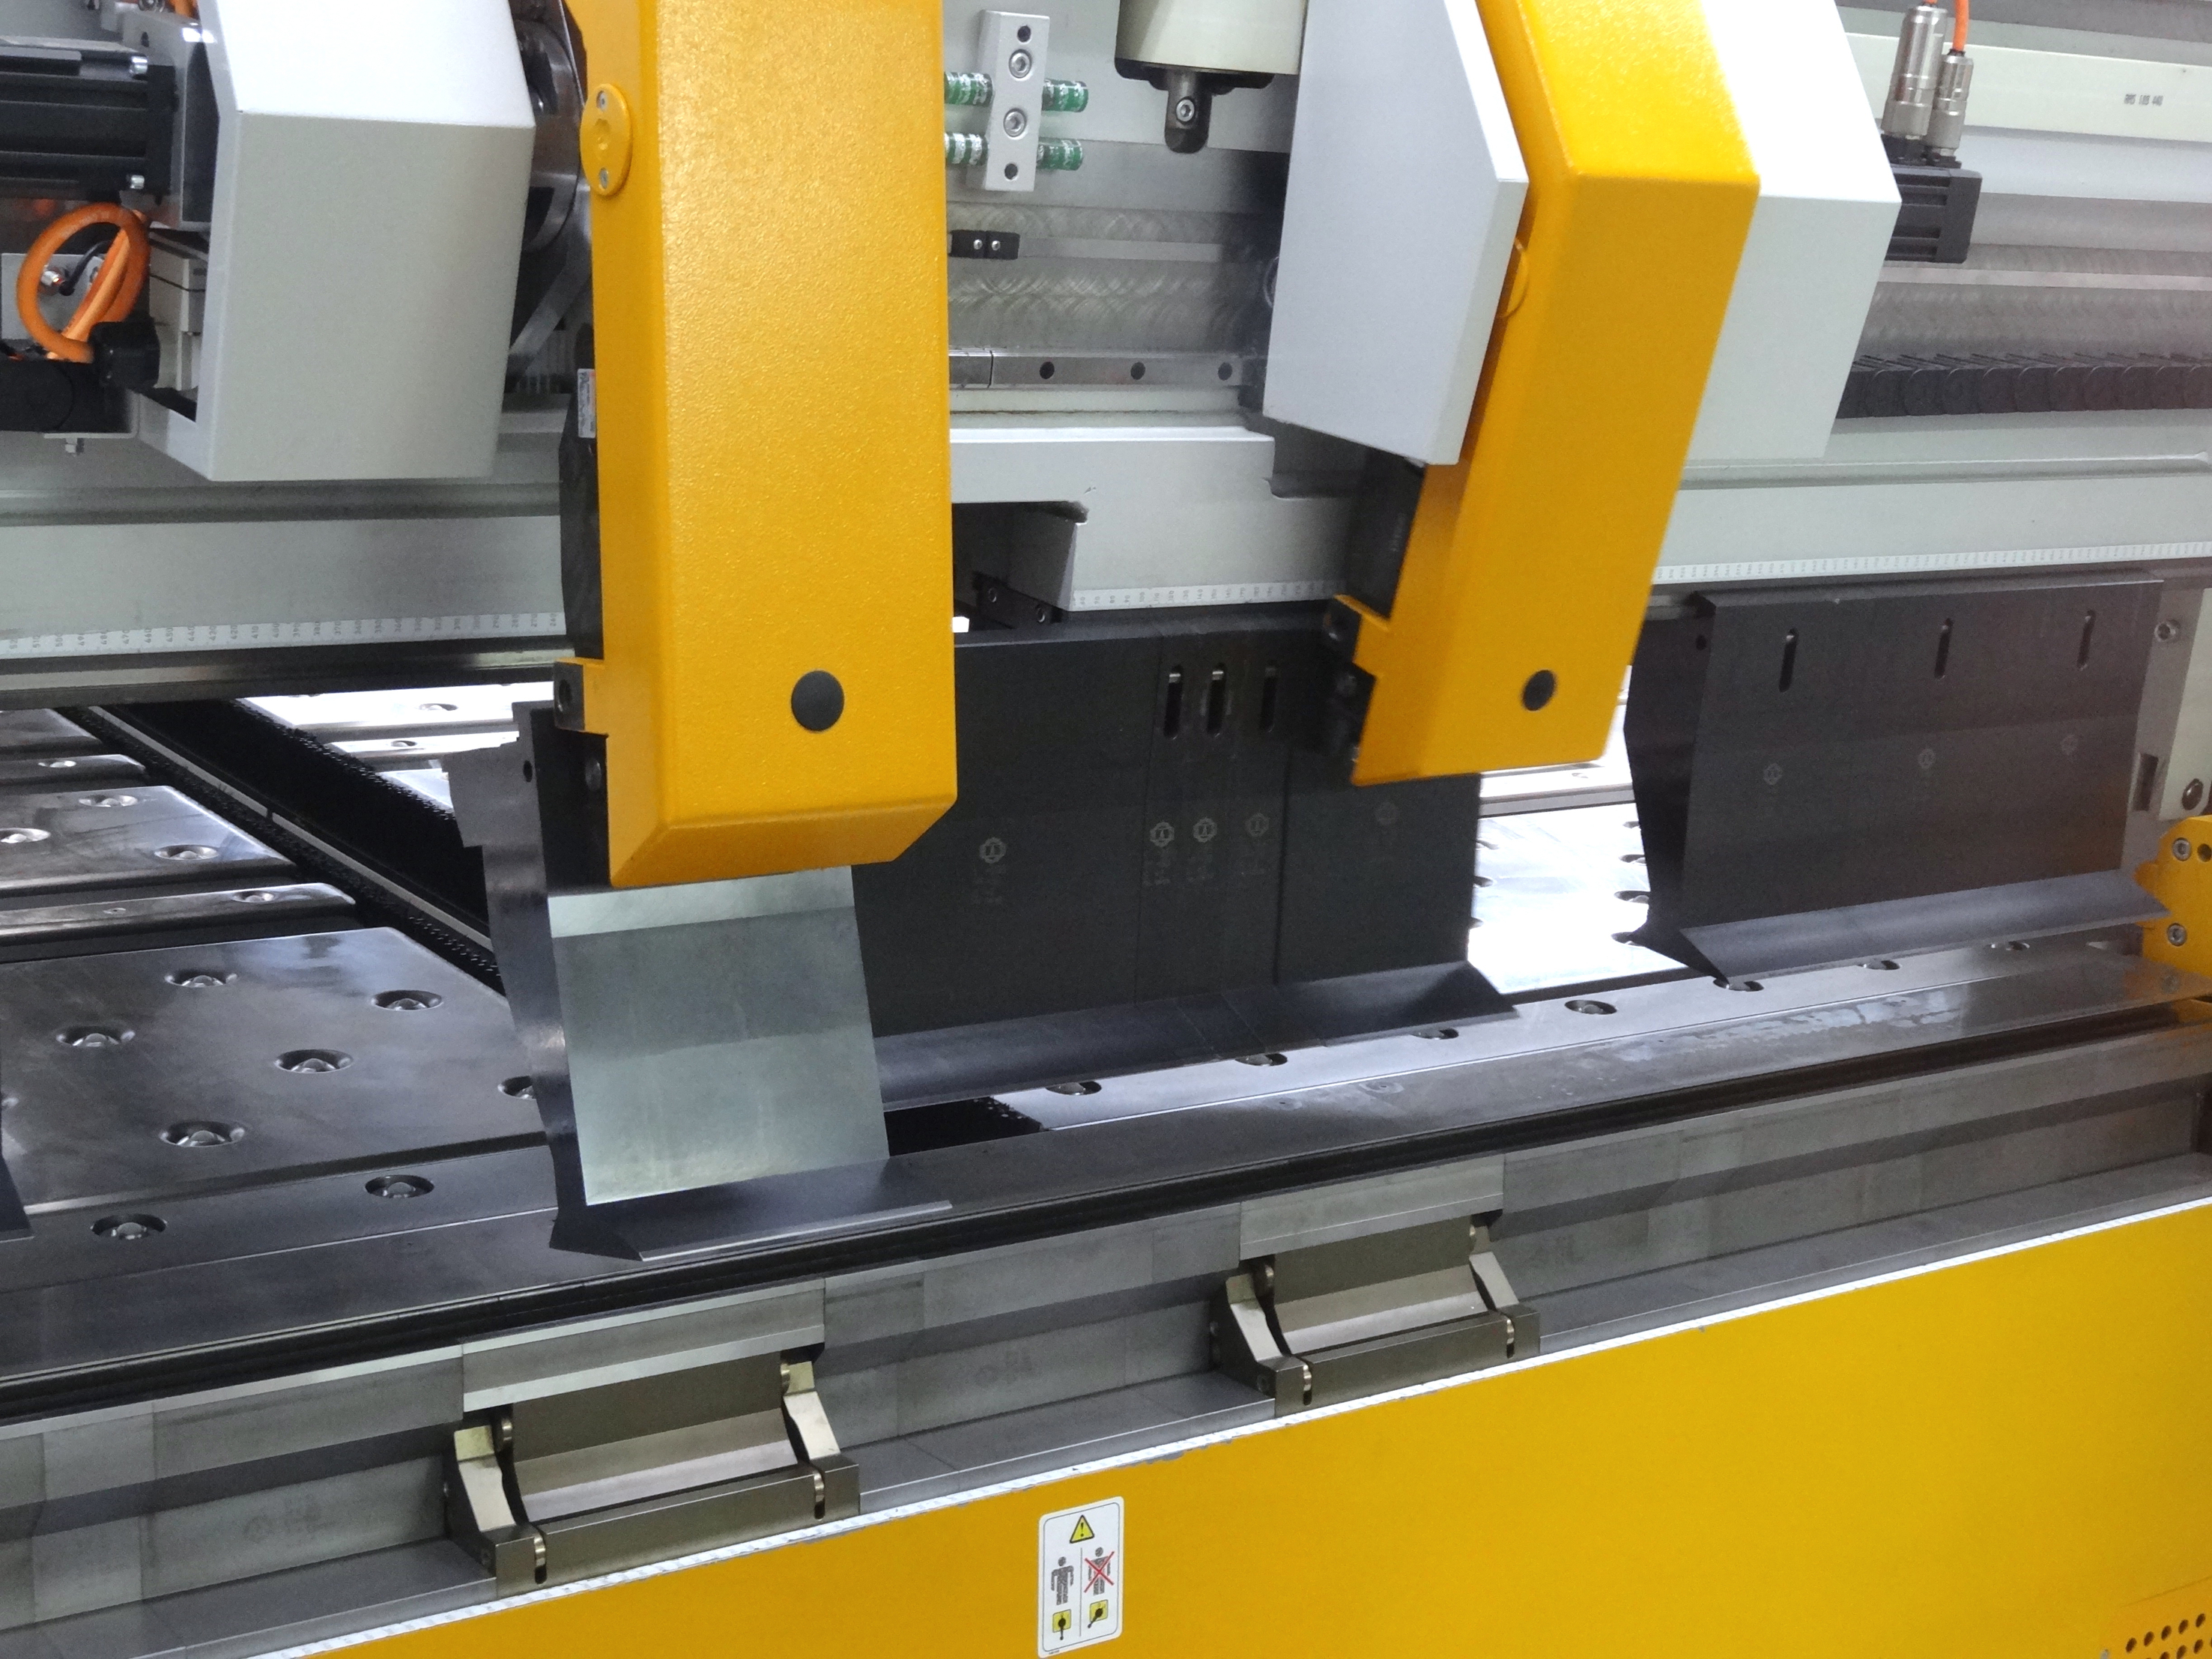 The tool changer sets up the machine when jobs change